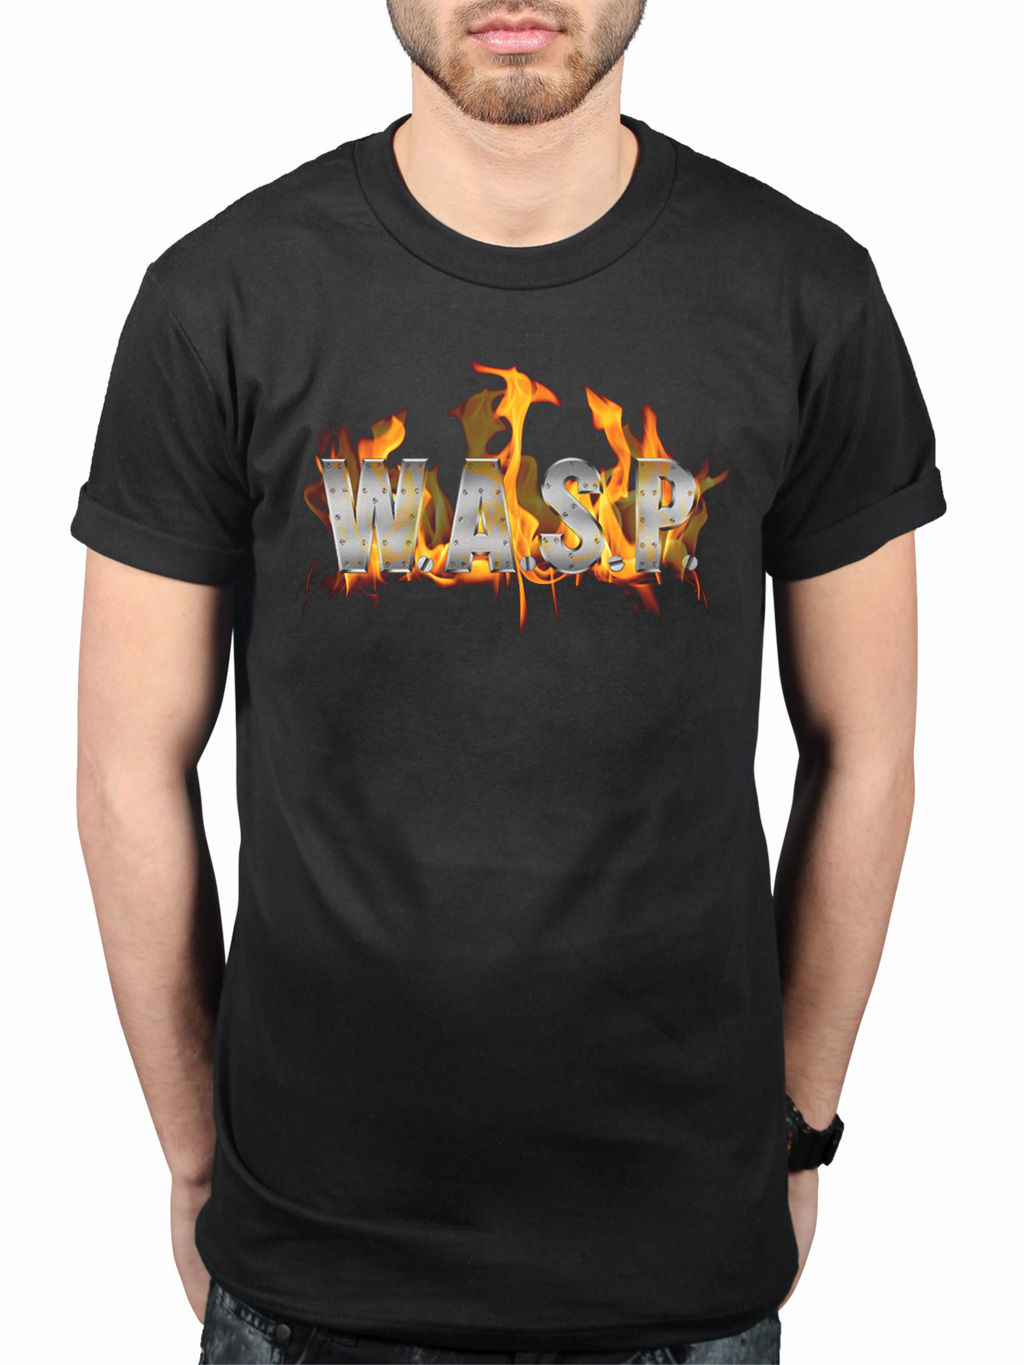 Official W.A.S.P. World Domination T-Shirt Heavy Metal Band I Wanna Be Somebody Mens 100% Cotton Short Sleeve Print